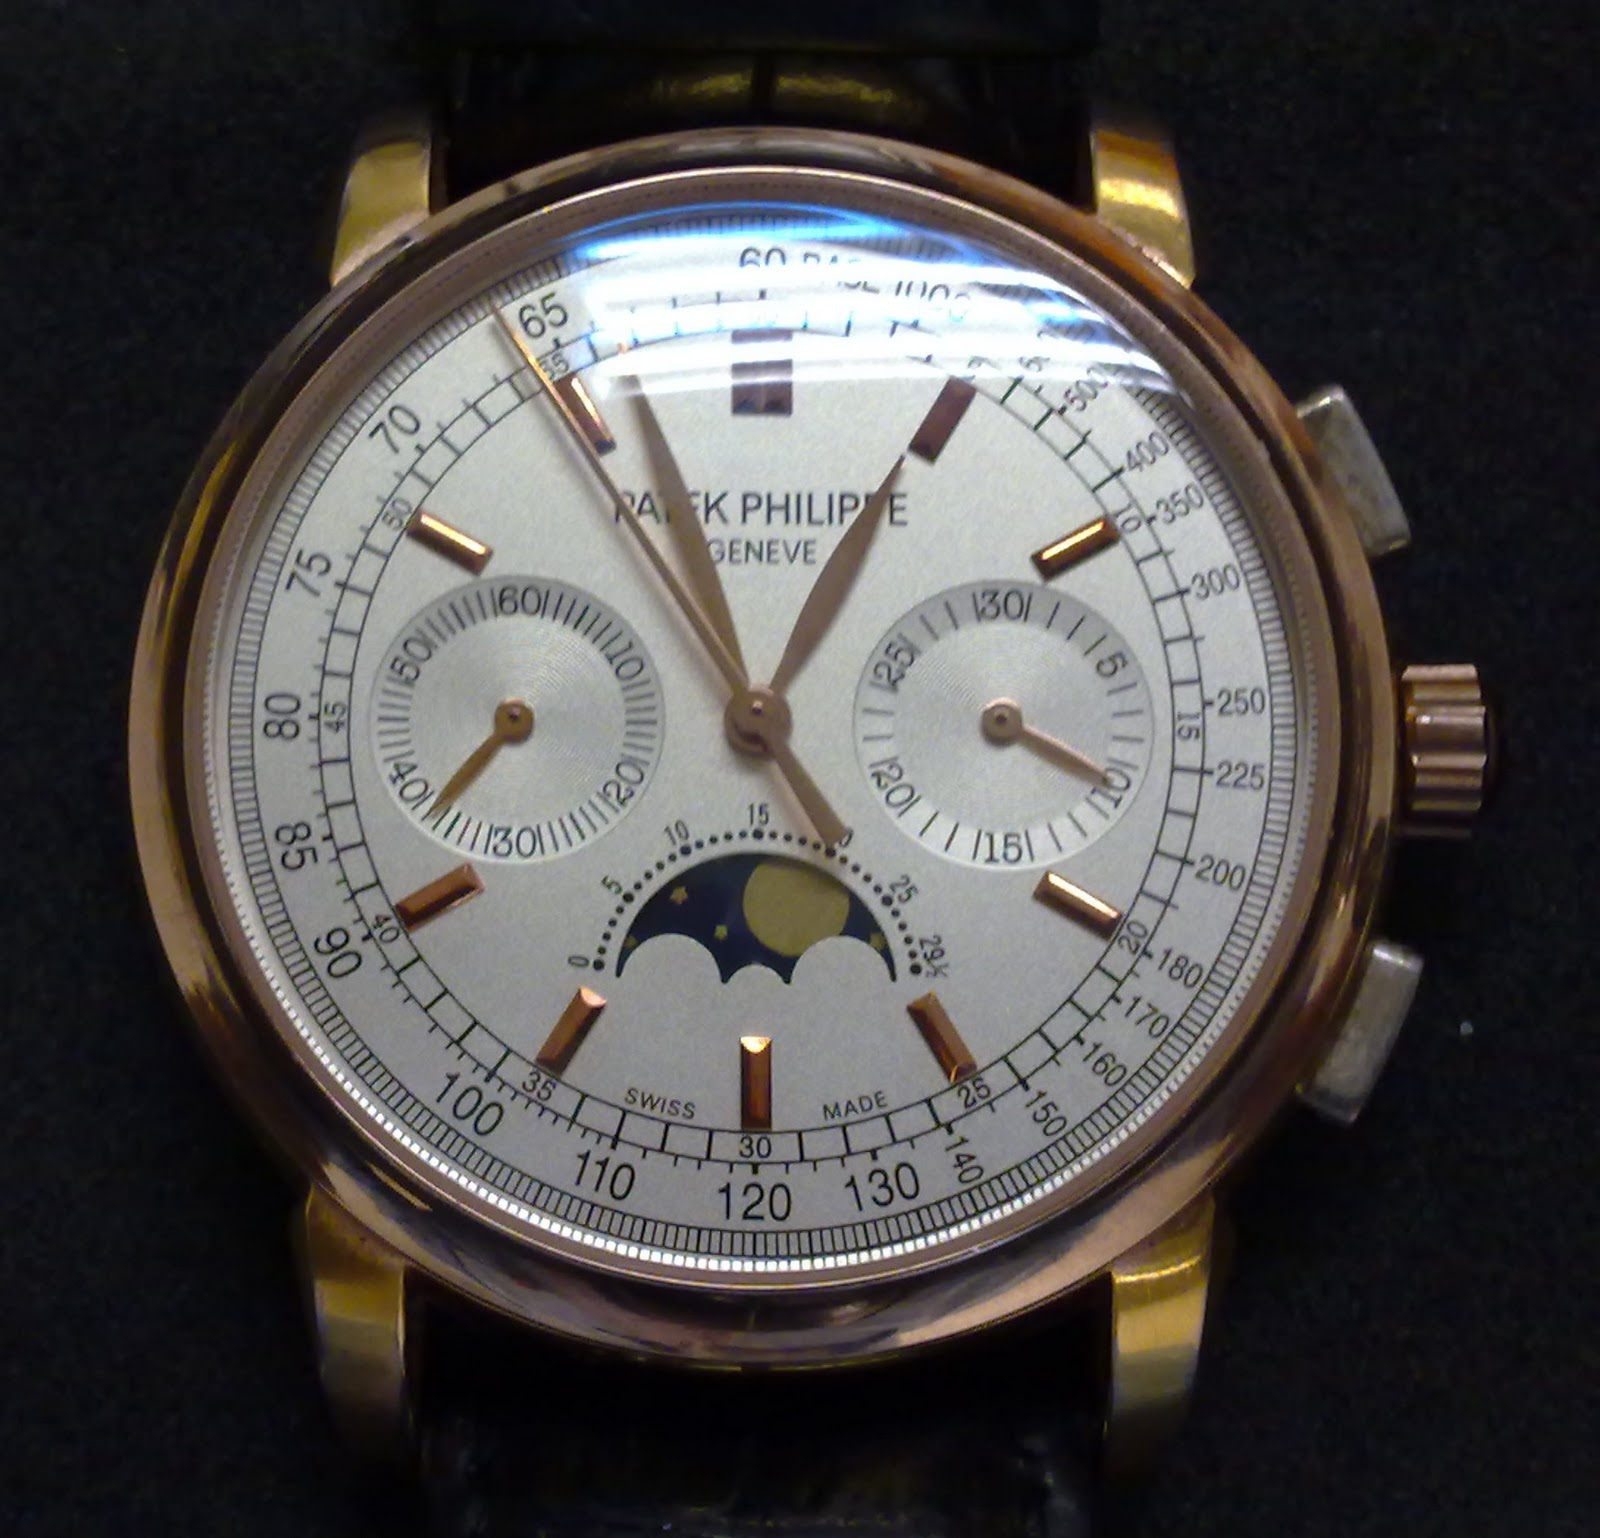 Hong kong watch fever vintage patek philippe 38mm chronograph with moonphase for Patek philippe moonphase